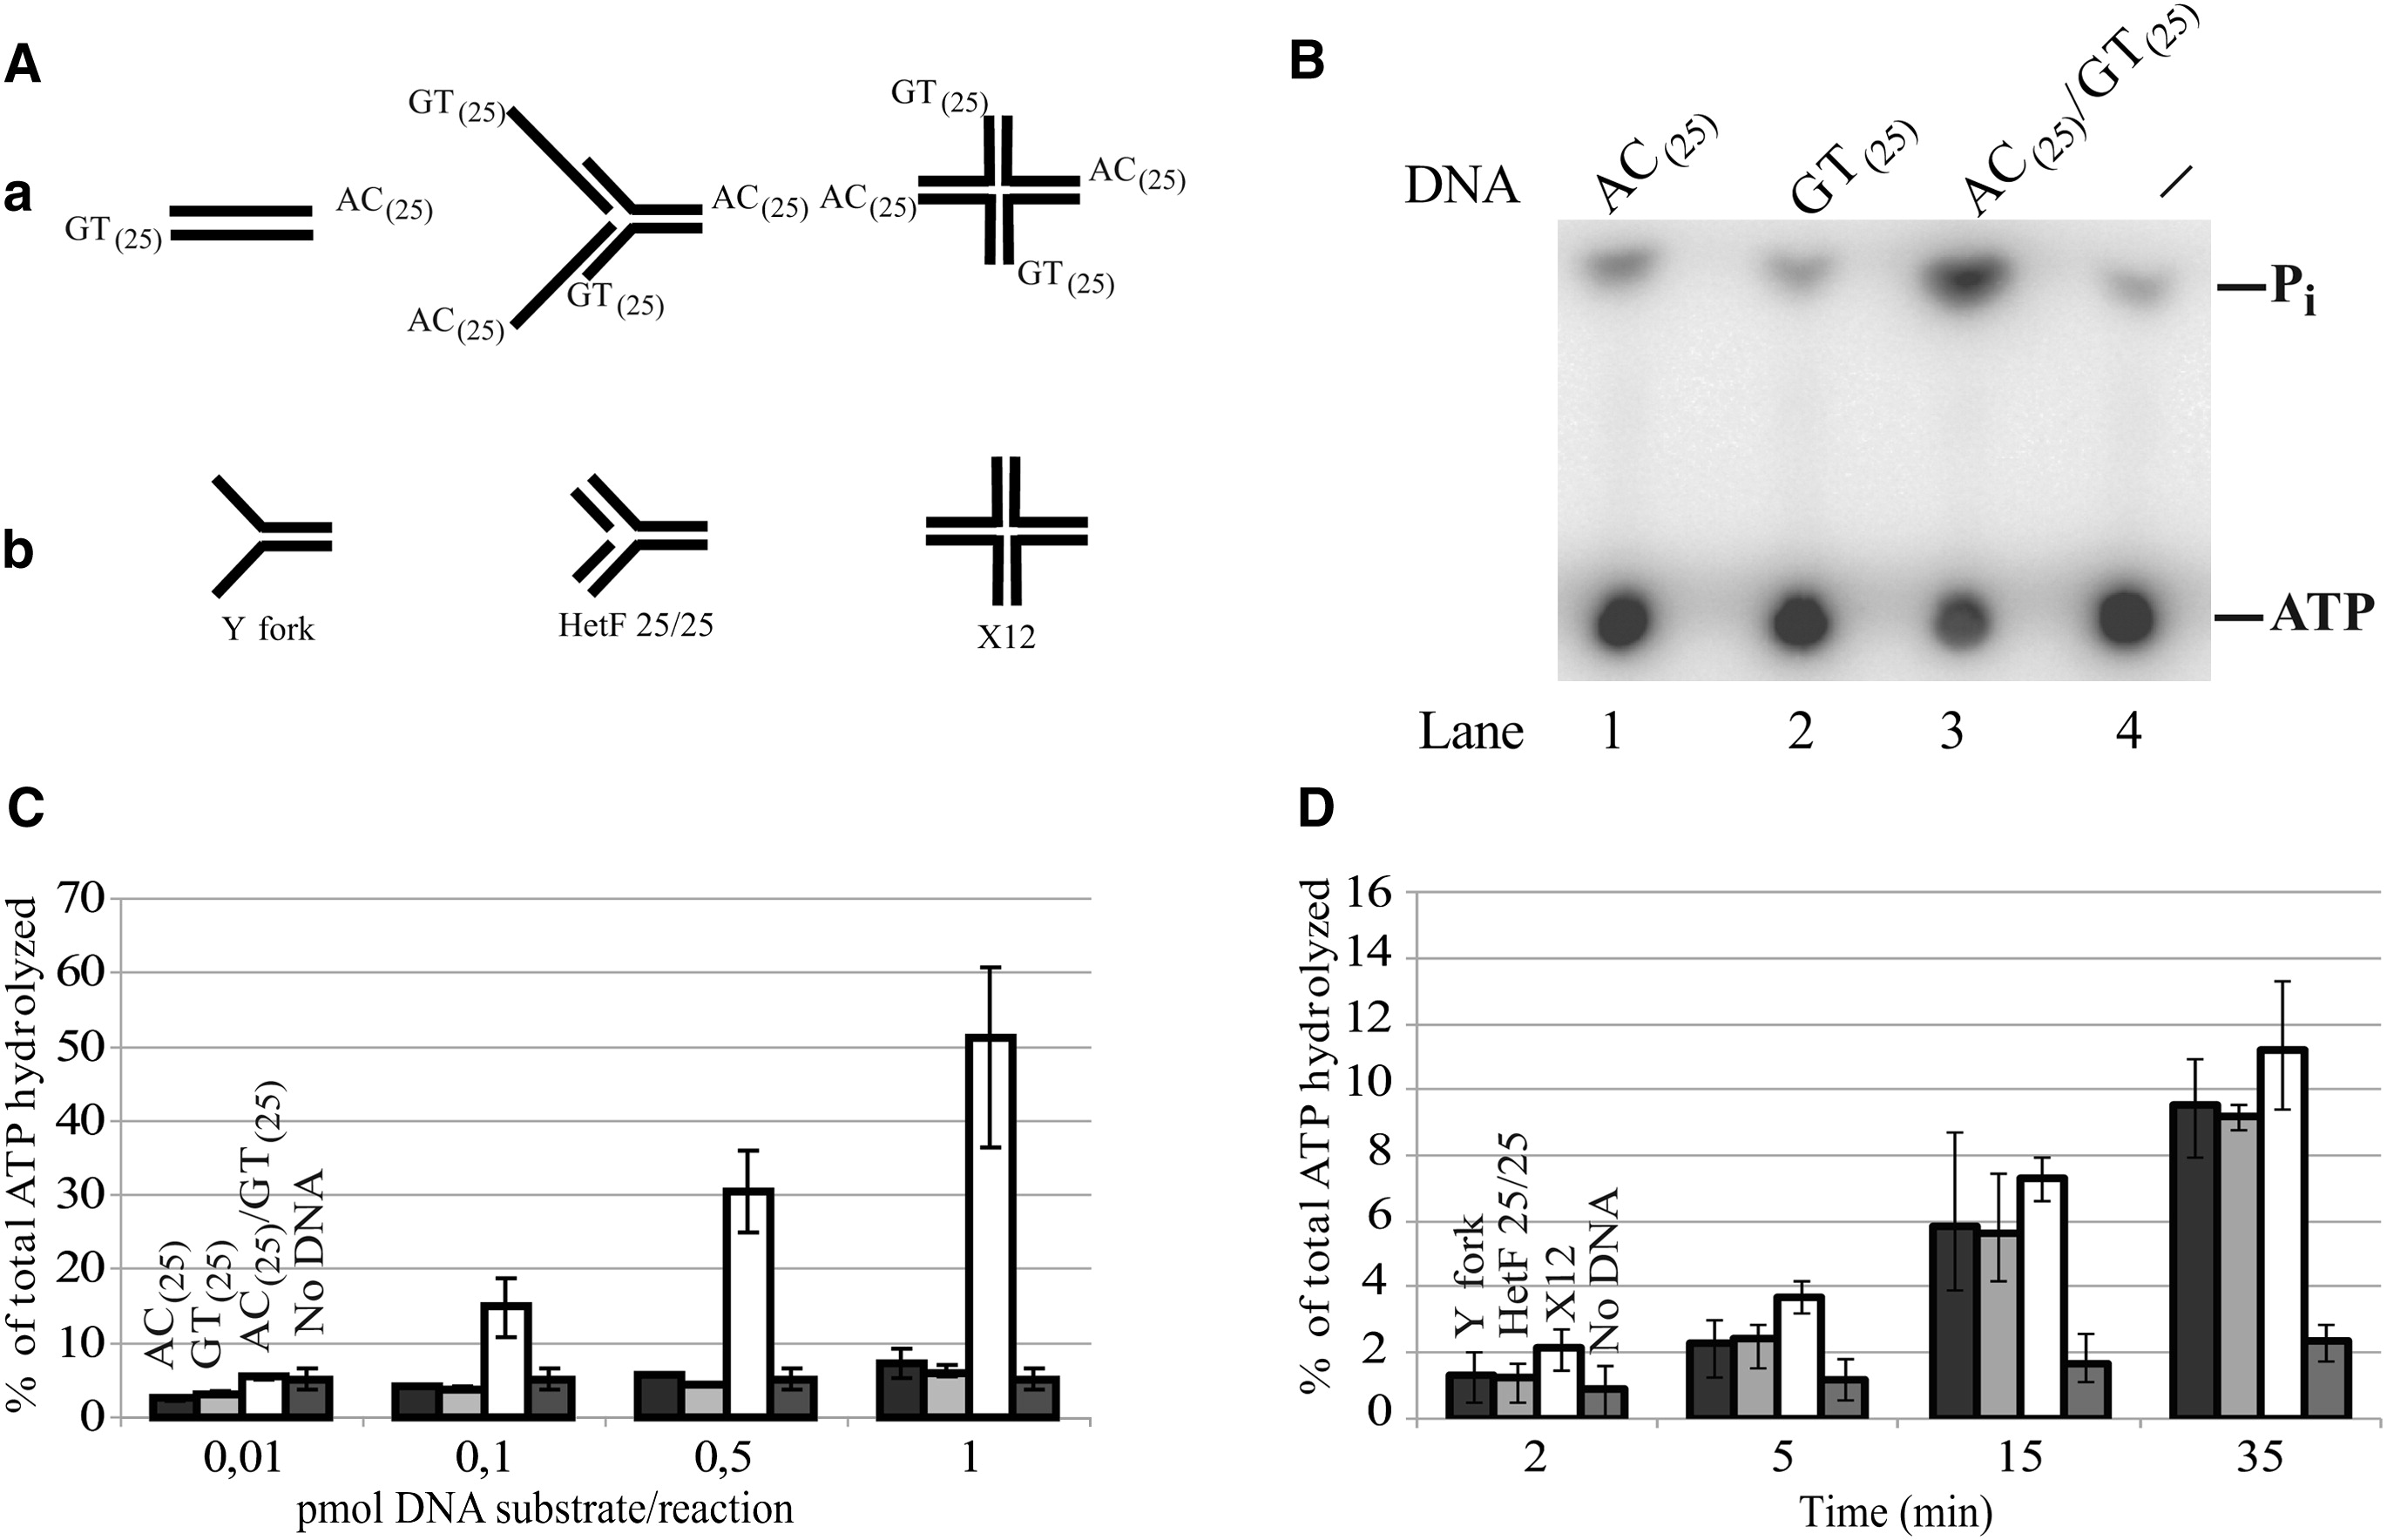 Yeast Rad5 Protein Required For Postreplication Repair Has A Dna Helicase Activity Specific For